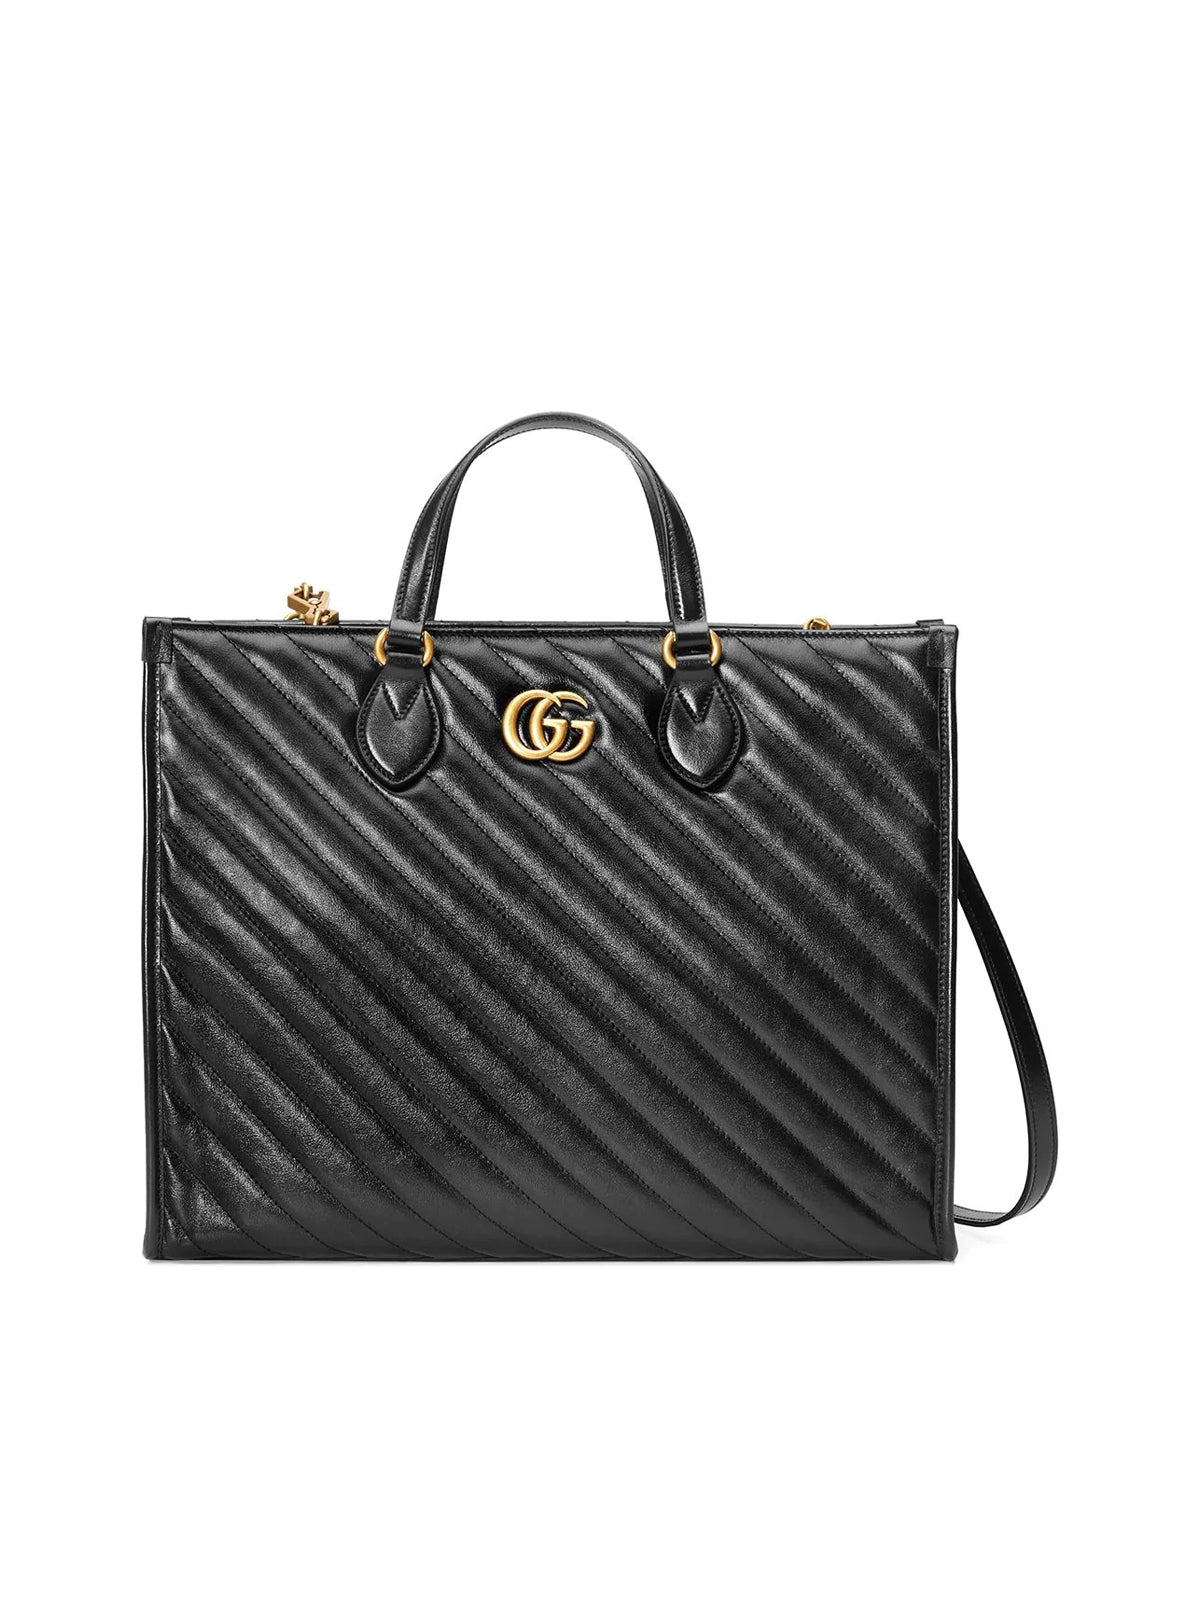 GG Marmont Tote Bag